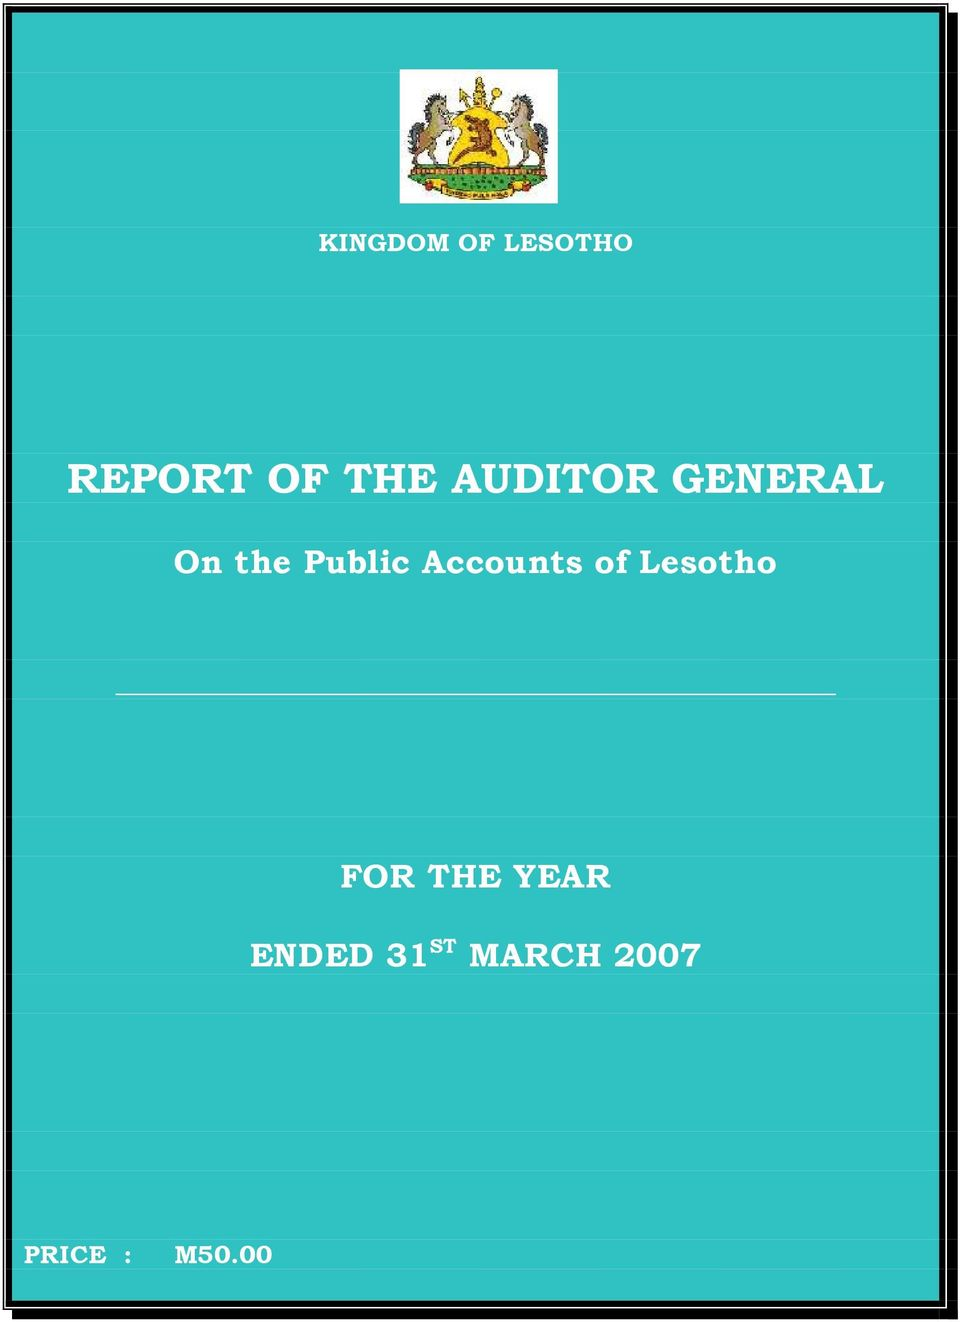 Accounts of Lesotho FOR THE YEAR